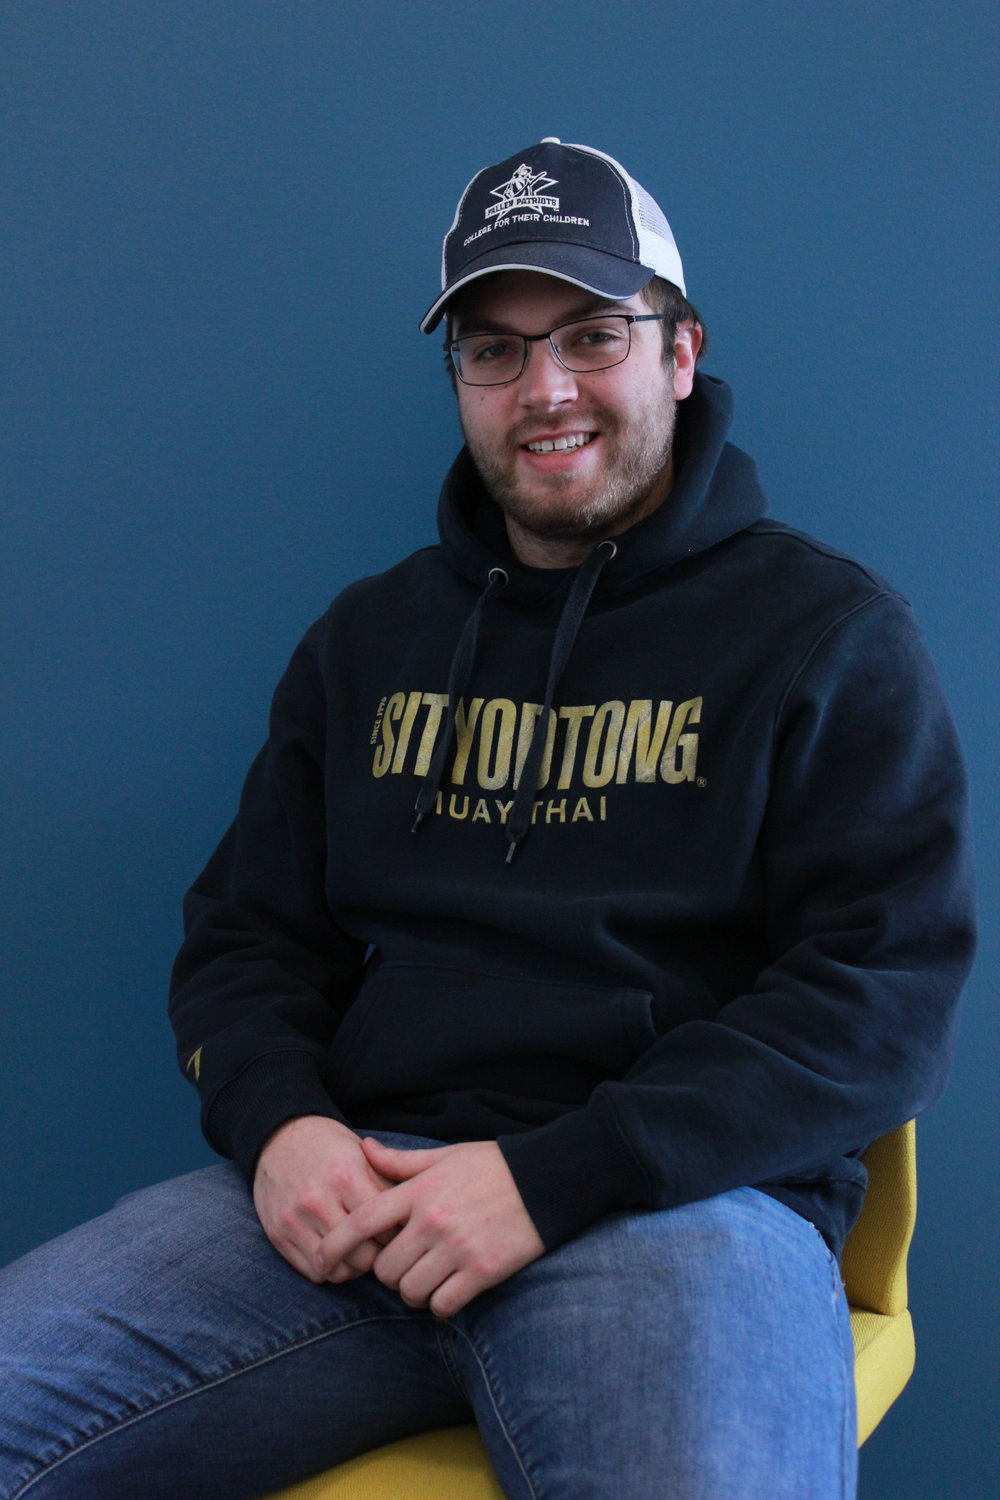 Bill Ruocco - Bill Ruocco is from Newbury, Massachusetts. He is a journalism major and a criminal justice minor looking to work in a non-profit some day. Bill loves the Boston Bruins more than anything.